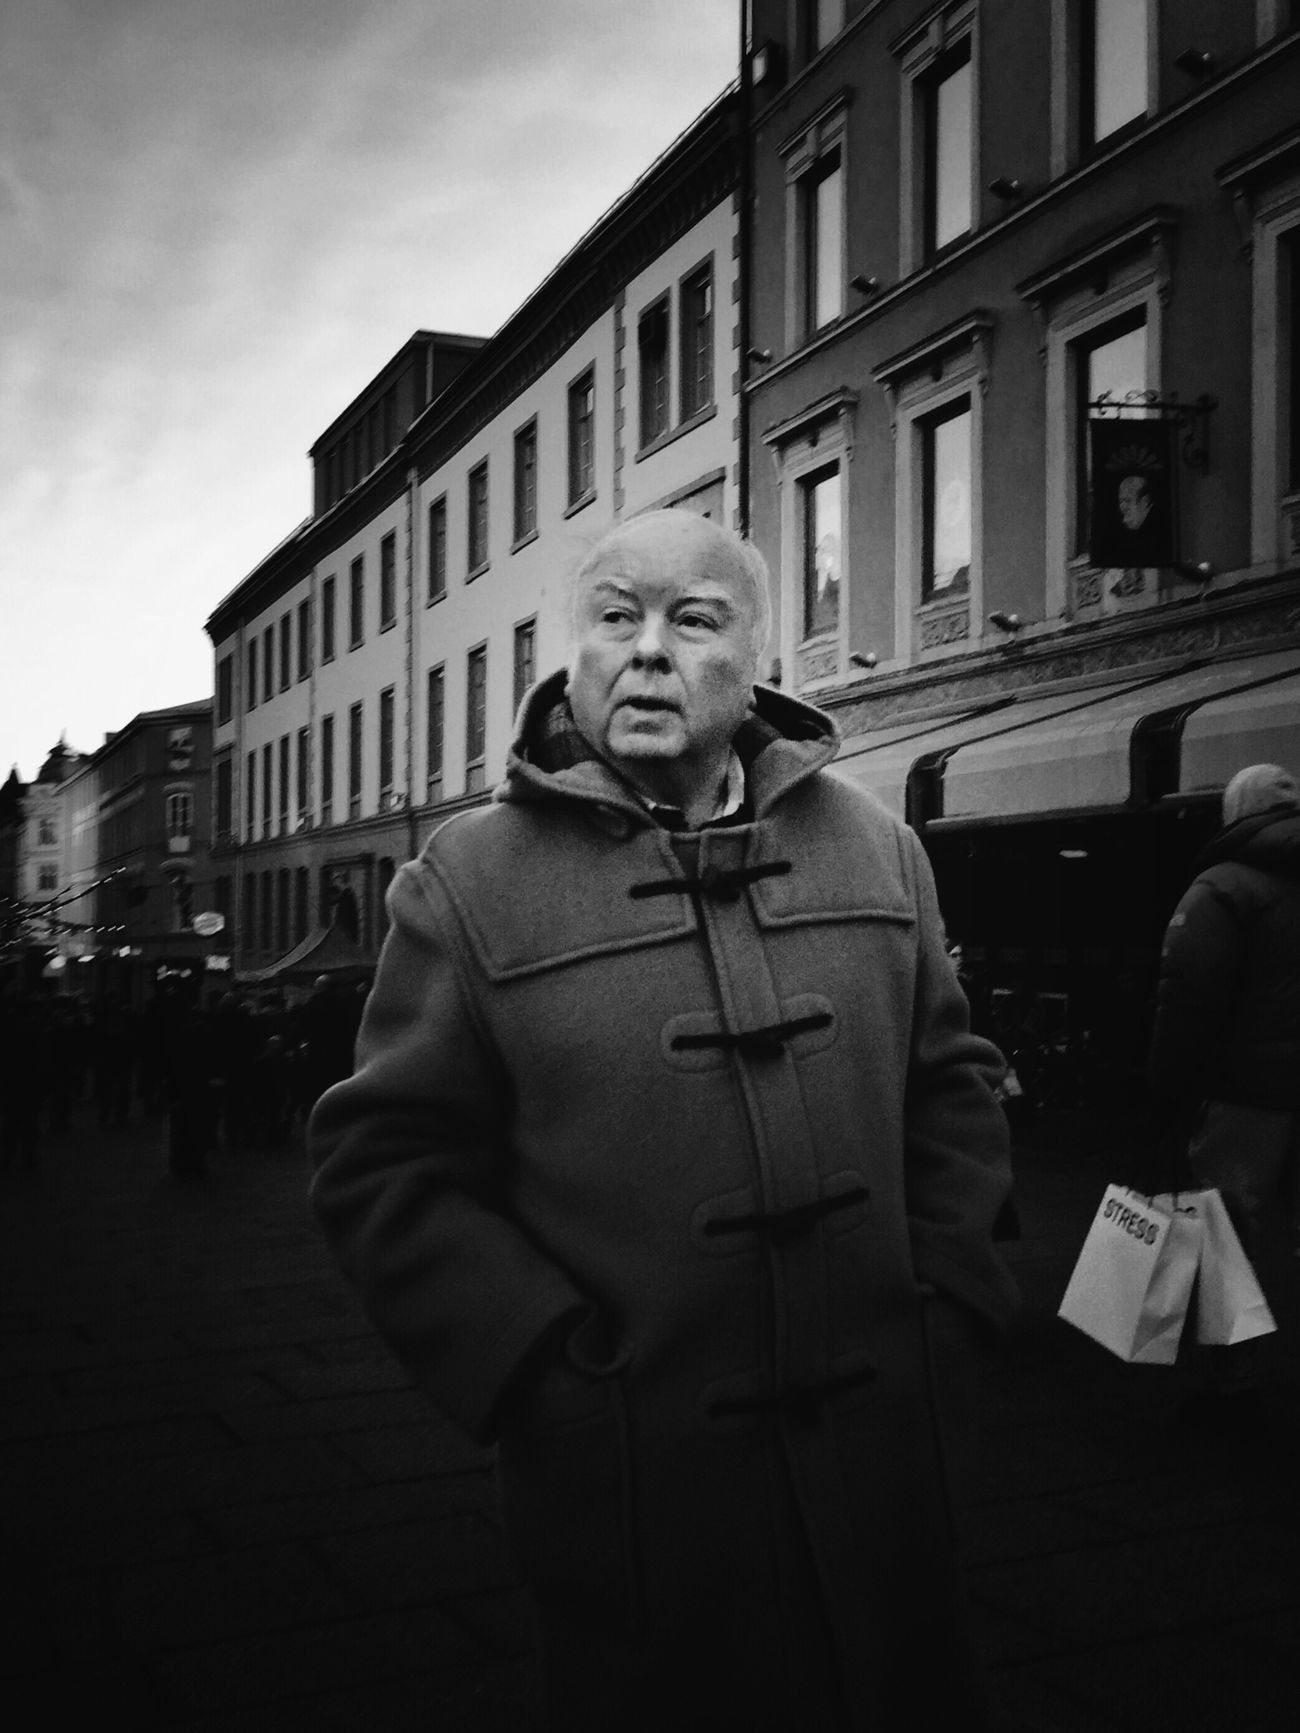 Last minute • Oslostreets Street Streetphotography Streetsofoslo Streetphoto_bw Streetbwcolor Black & White Cold Real People One Person